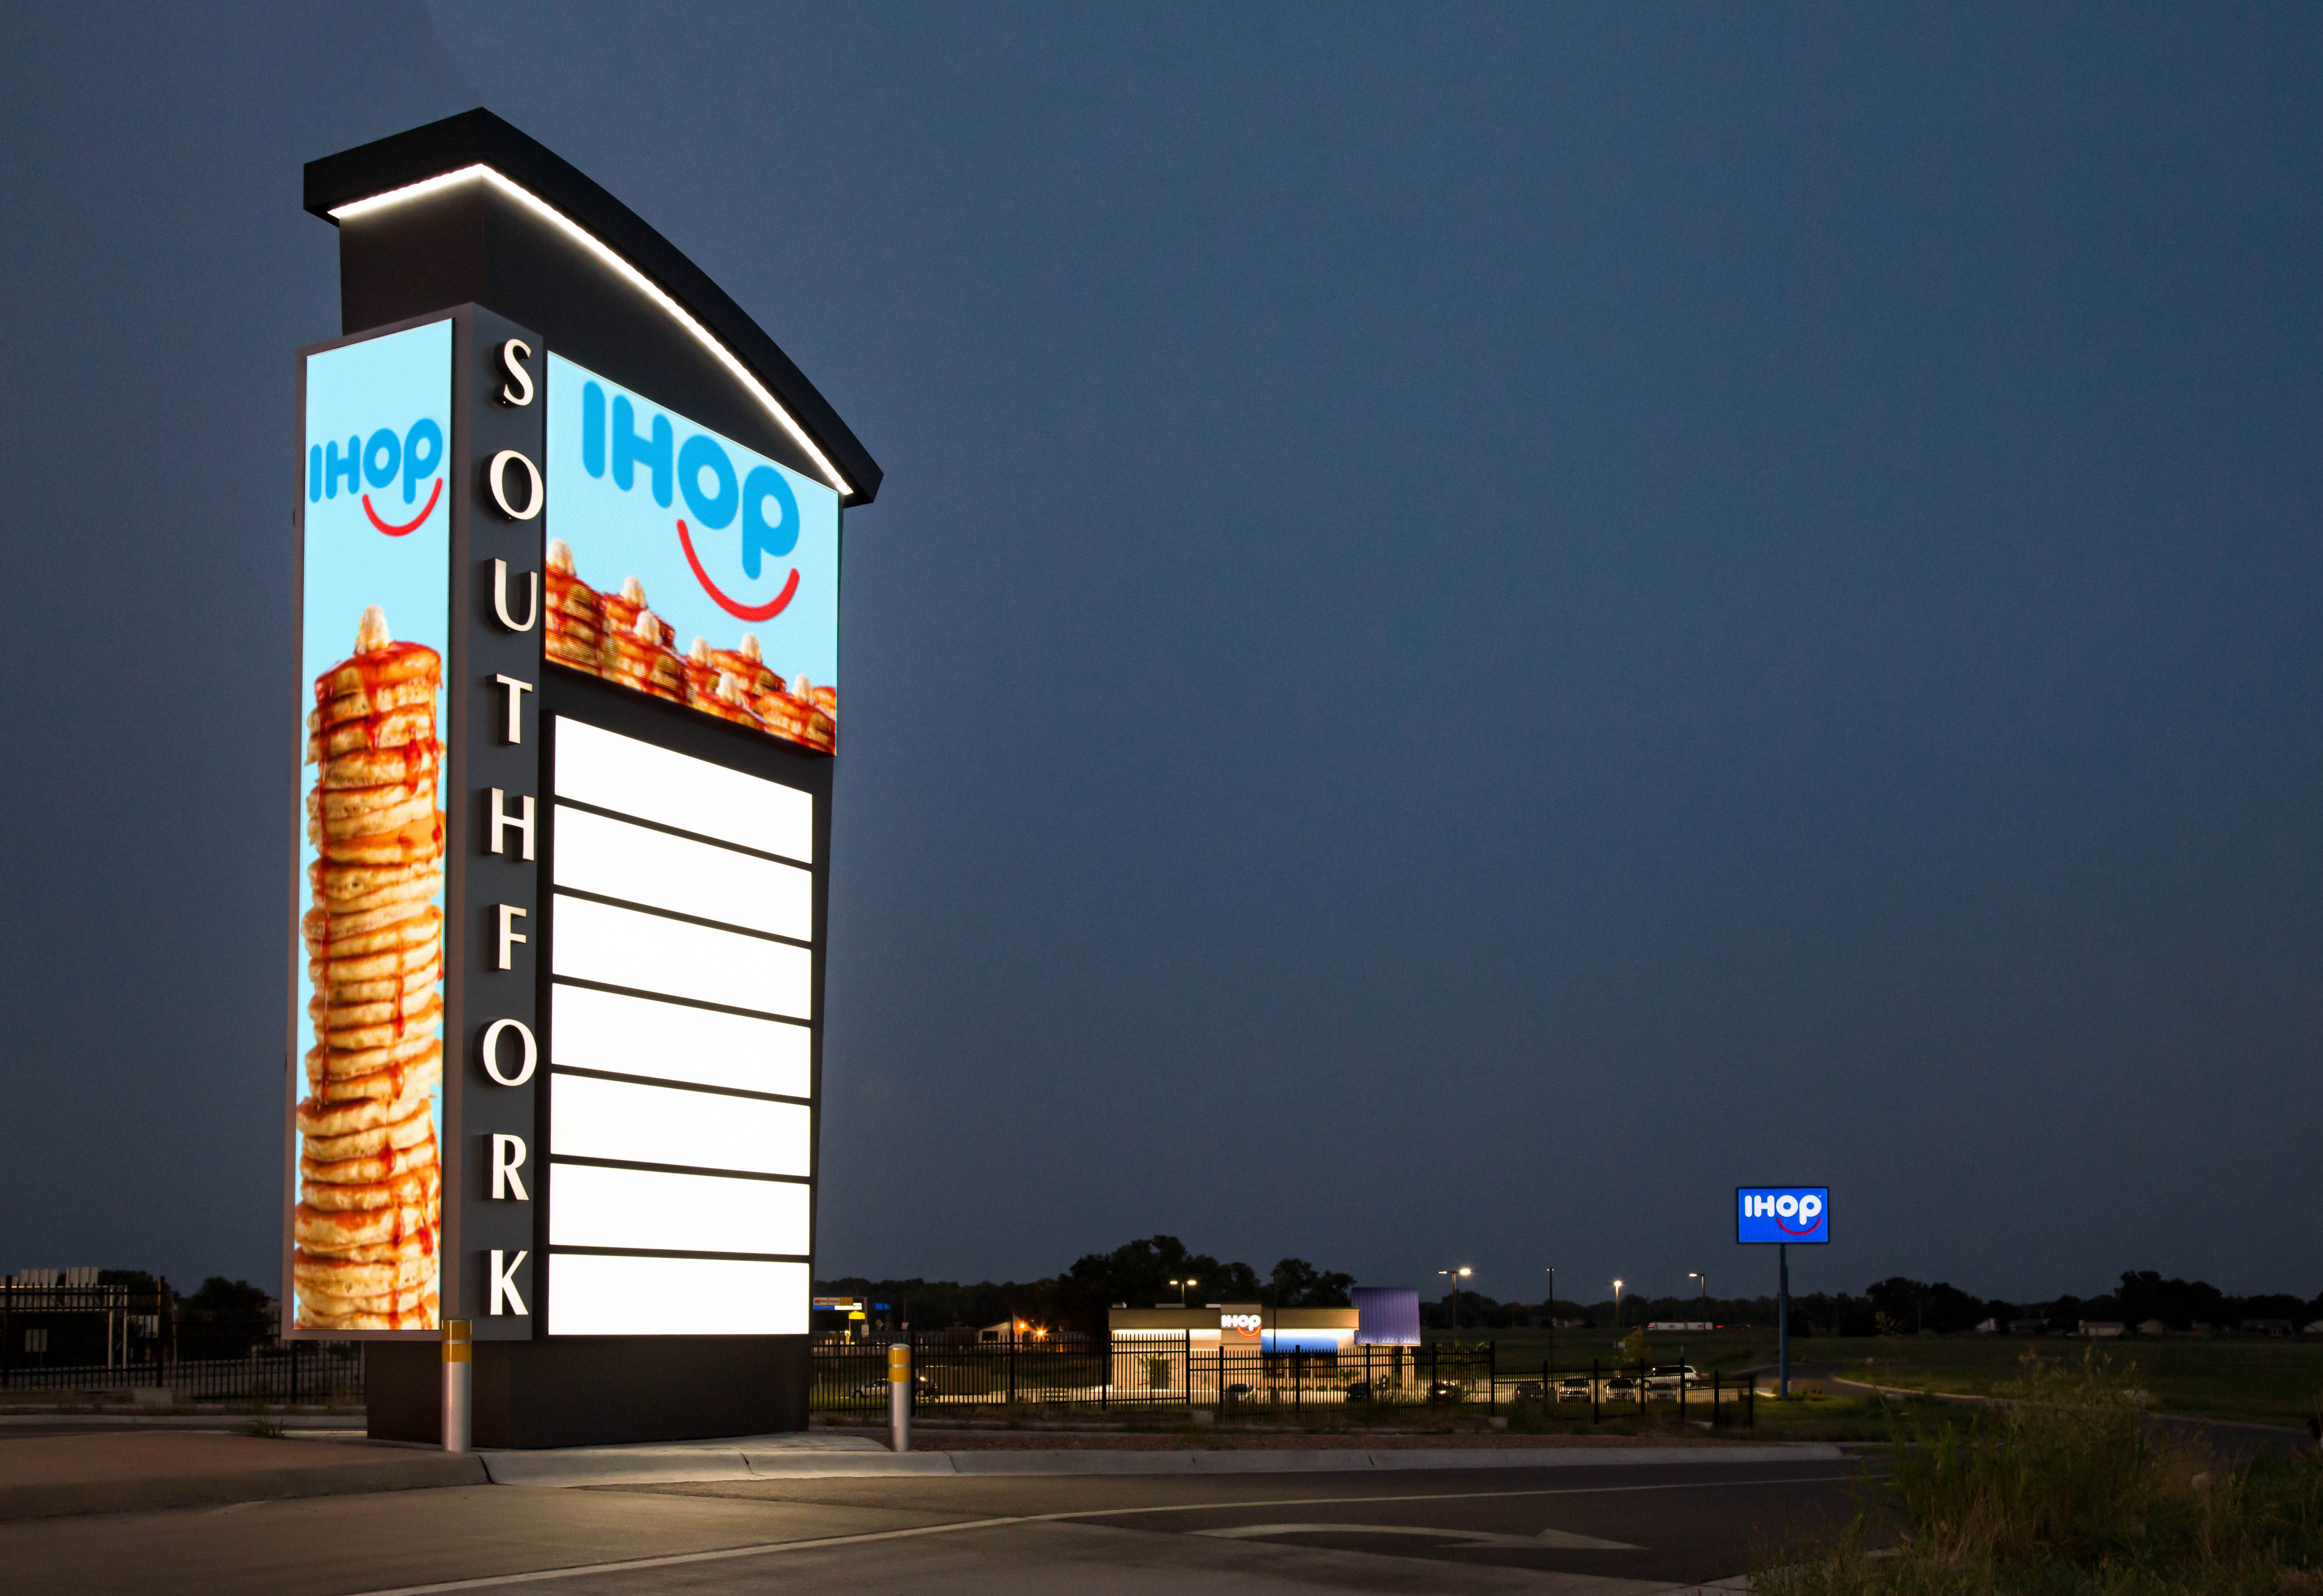 Image of a message board advertising IHOP